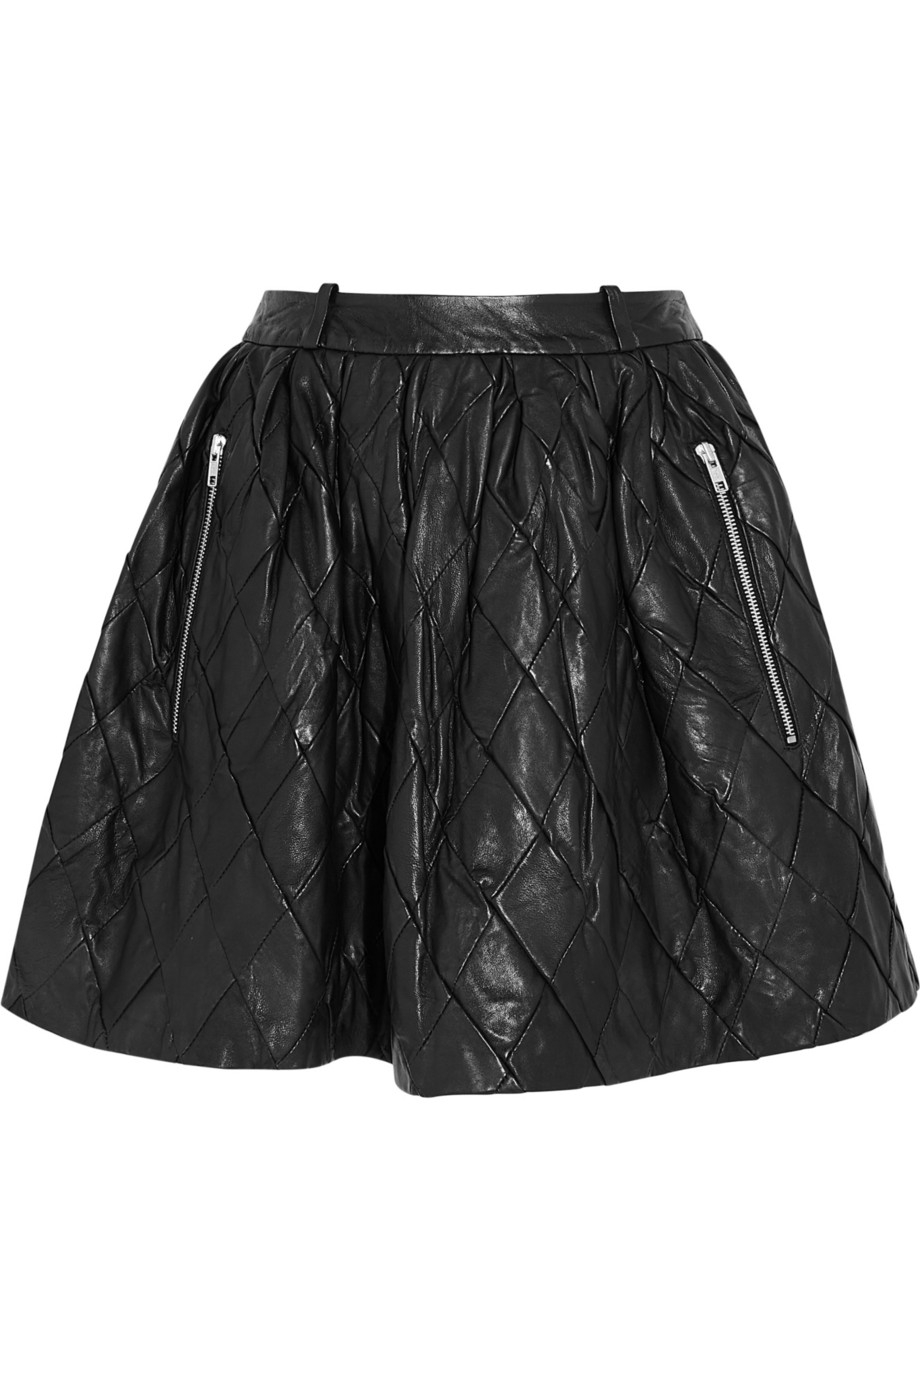 7c3f223c68 Preen Line Iris Quilted Leather Mini Skirt in Black - Lyst